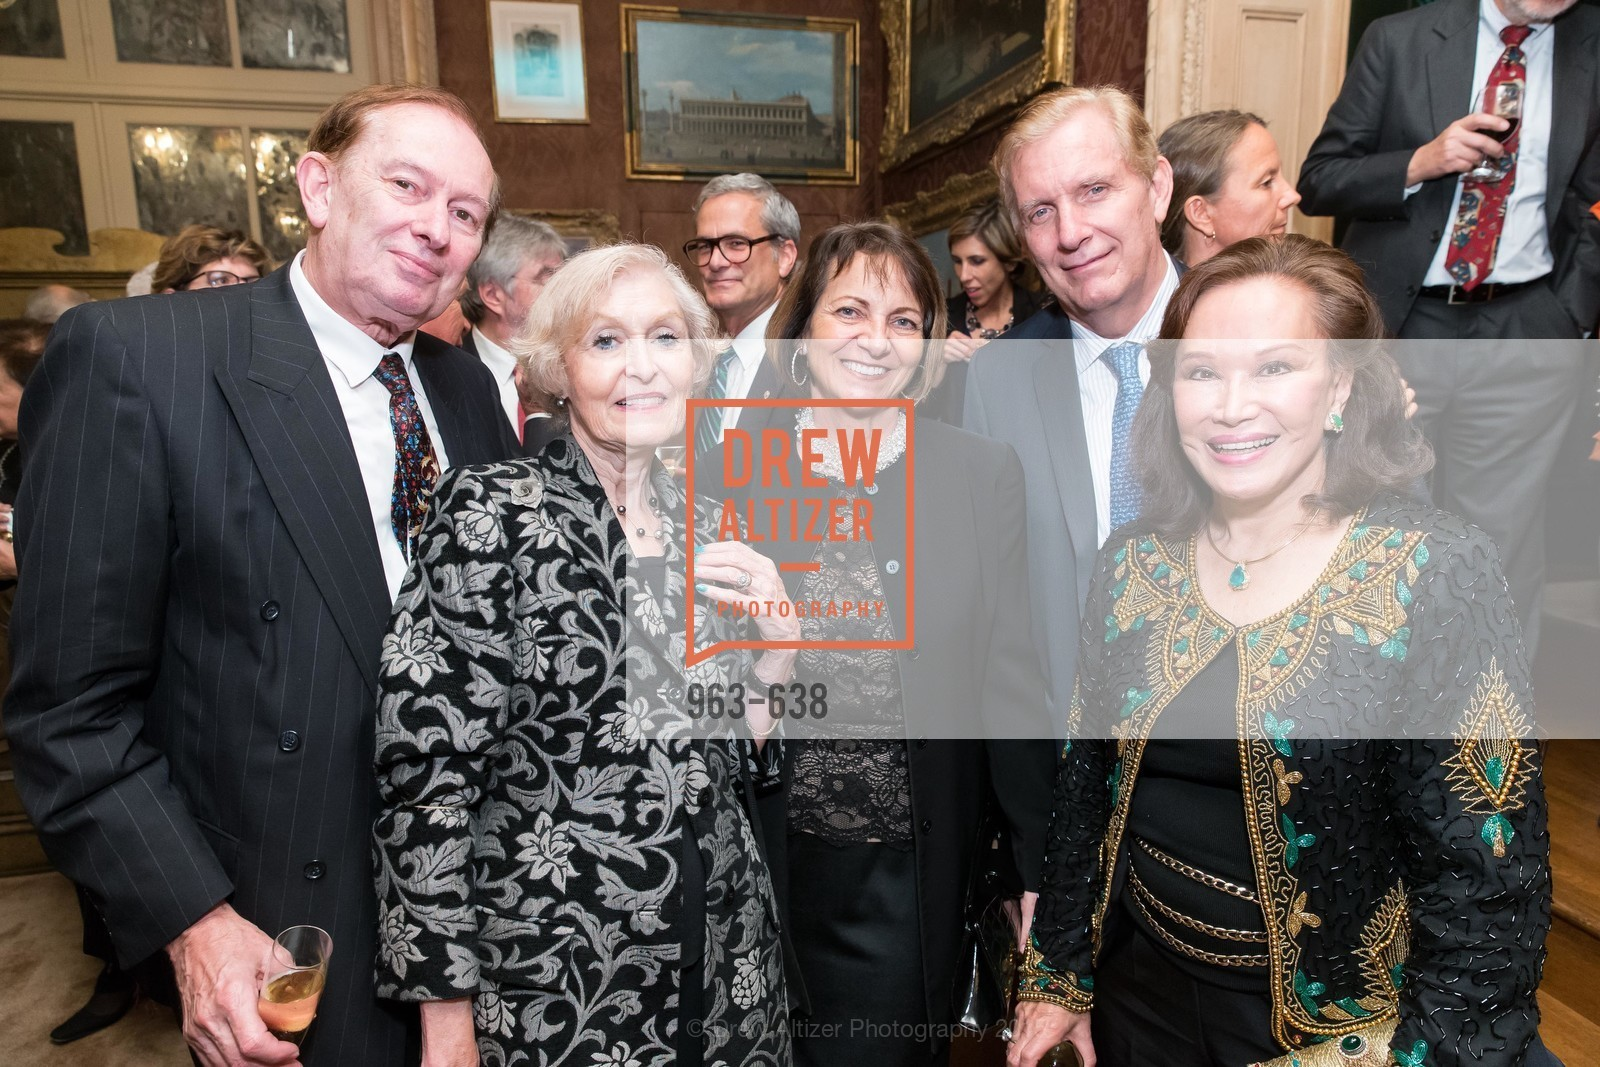 Paul Voisin, Eva Voisin, George Norton, Martha Hertelendy, San Francisco Mayor's Office of Protocol Christmas Party, Private Residence, December 9th, 2015,Drew Altizer, Drew Altizer Photography, full-service agency, private events, San Francisco photographer, photographer california